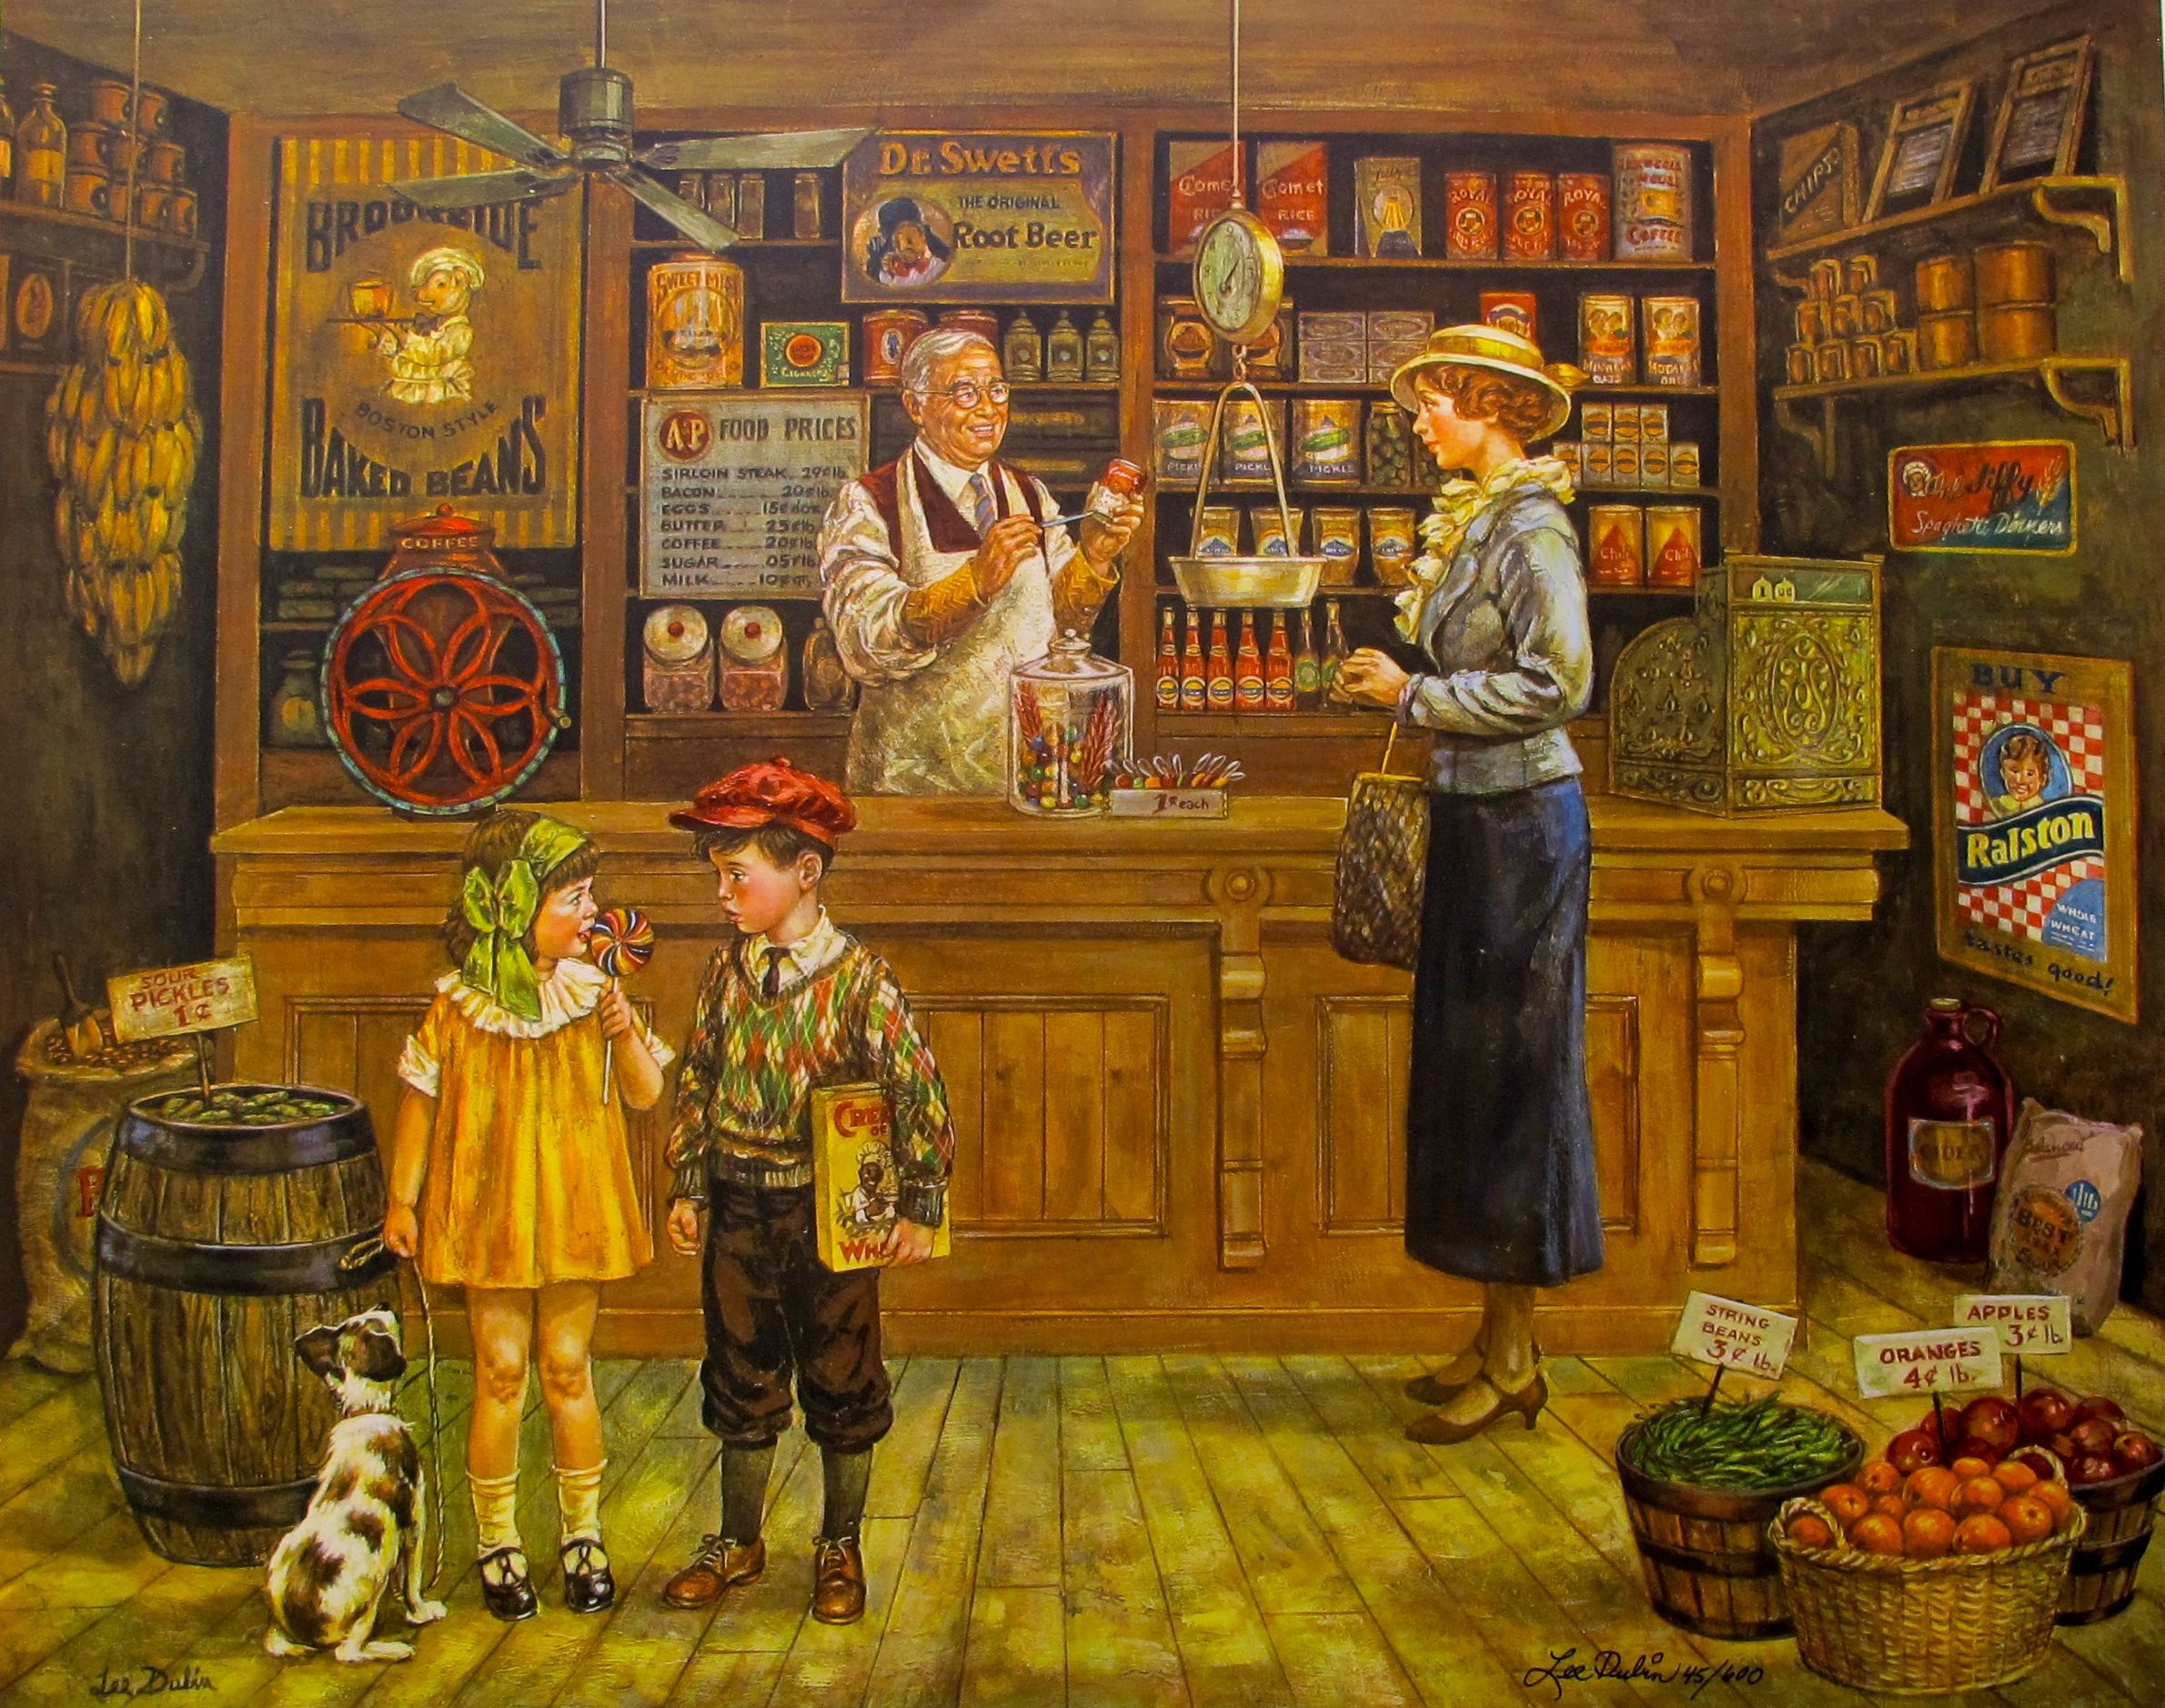 Lee Dubin 1932 GENERAL STORE Hand Signed Limited Edition Lithograph